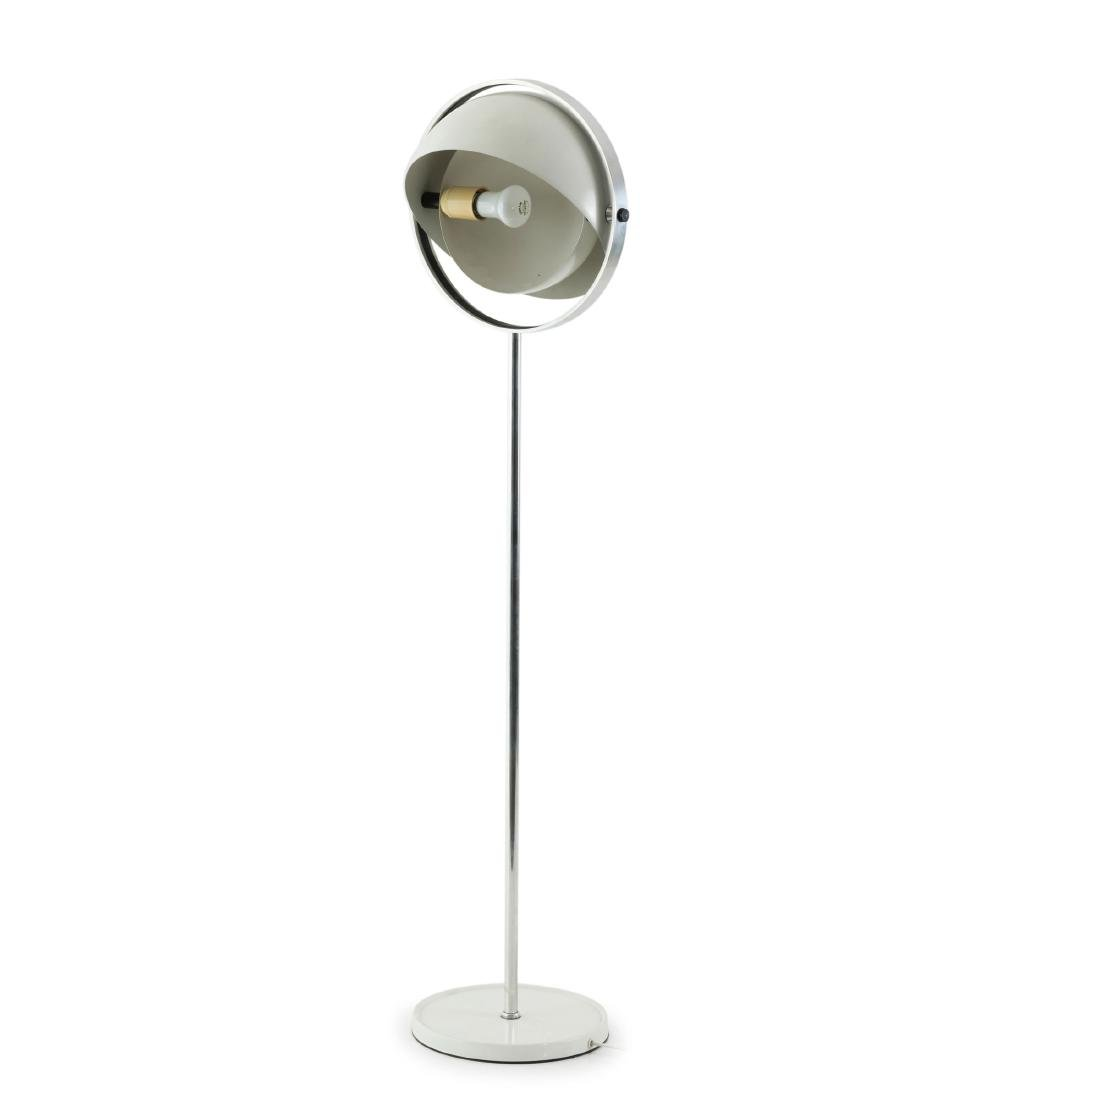 'Moonlight' floor lamp, 1963 - 6